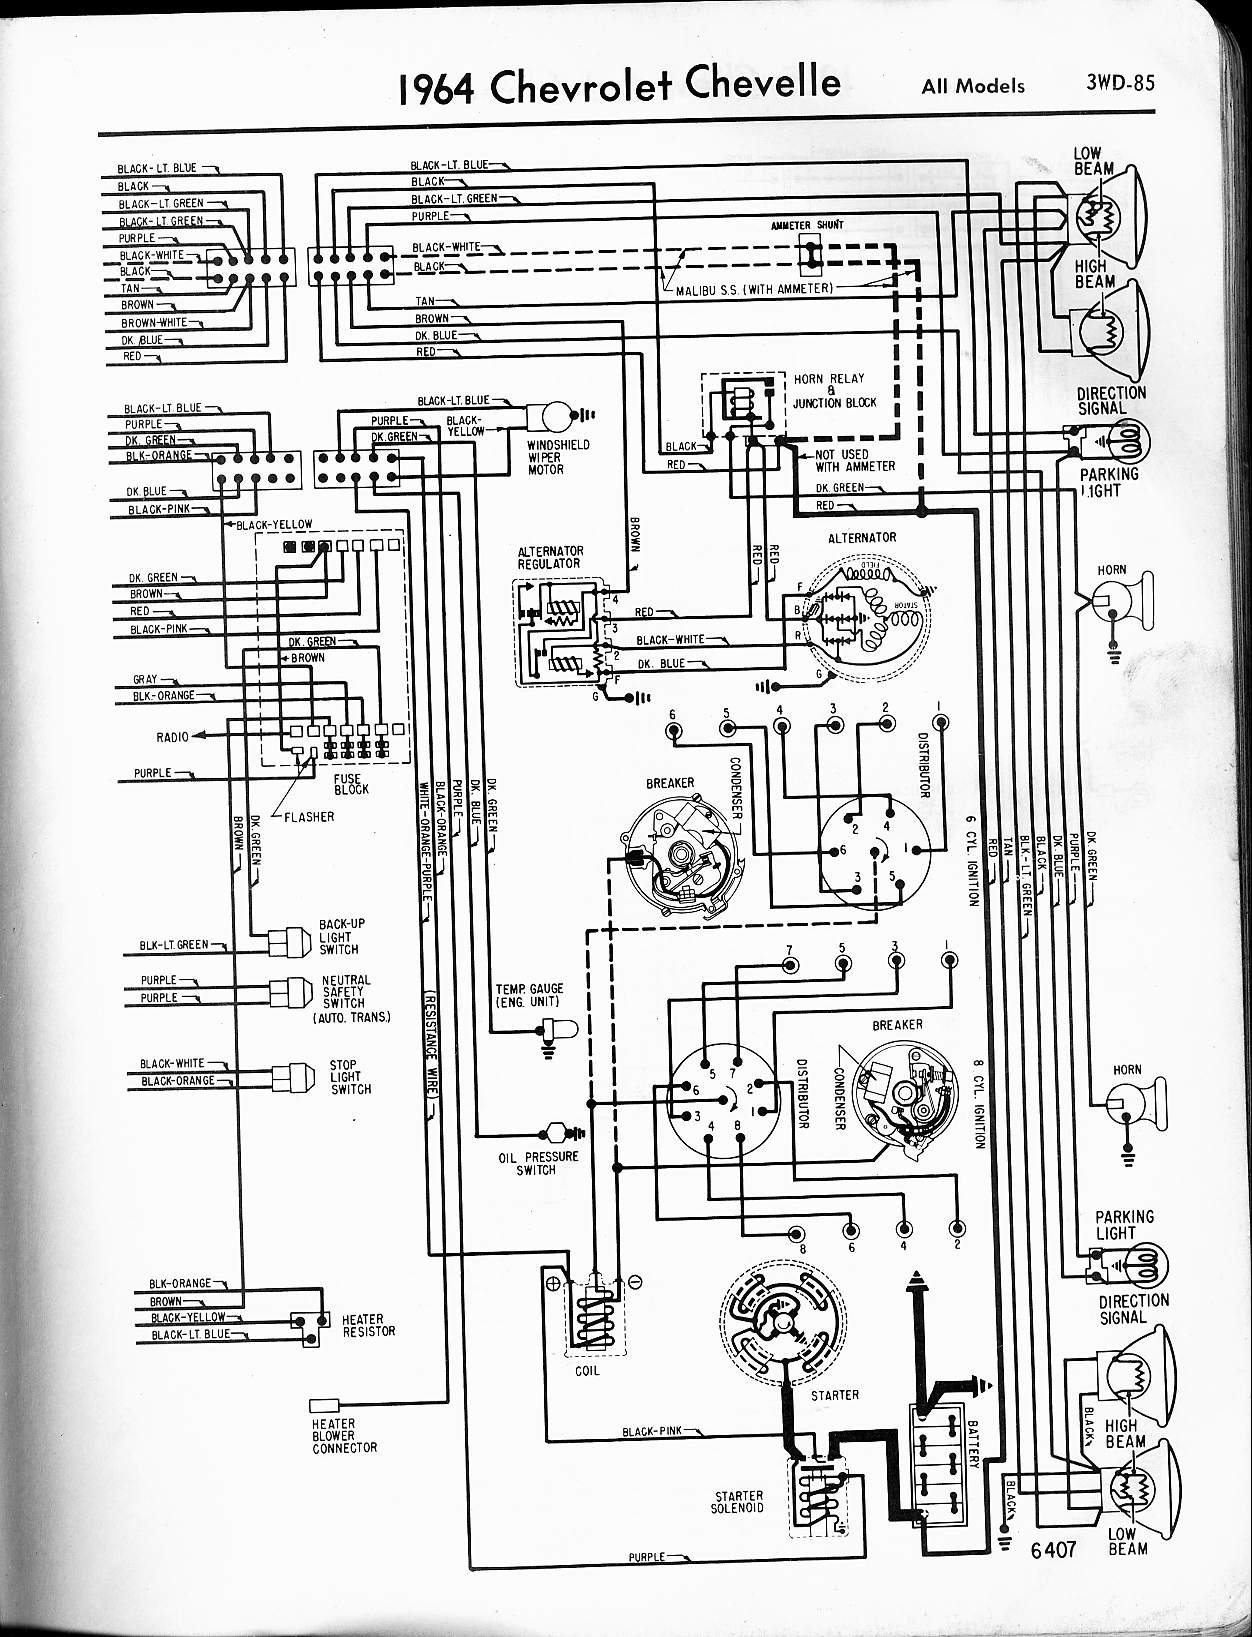 1966 Mustang Wiring Diagram Tachometer - 2005 Pontiac Grand Prix Fuse Box  Diagram - dodyjm.tukune.jeanjaures37.fr | 1980 Mustang Tach Wiring Diagram |  | Wiring Diagram Resource